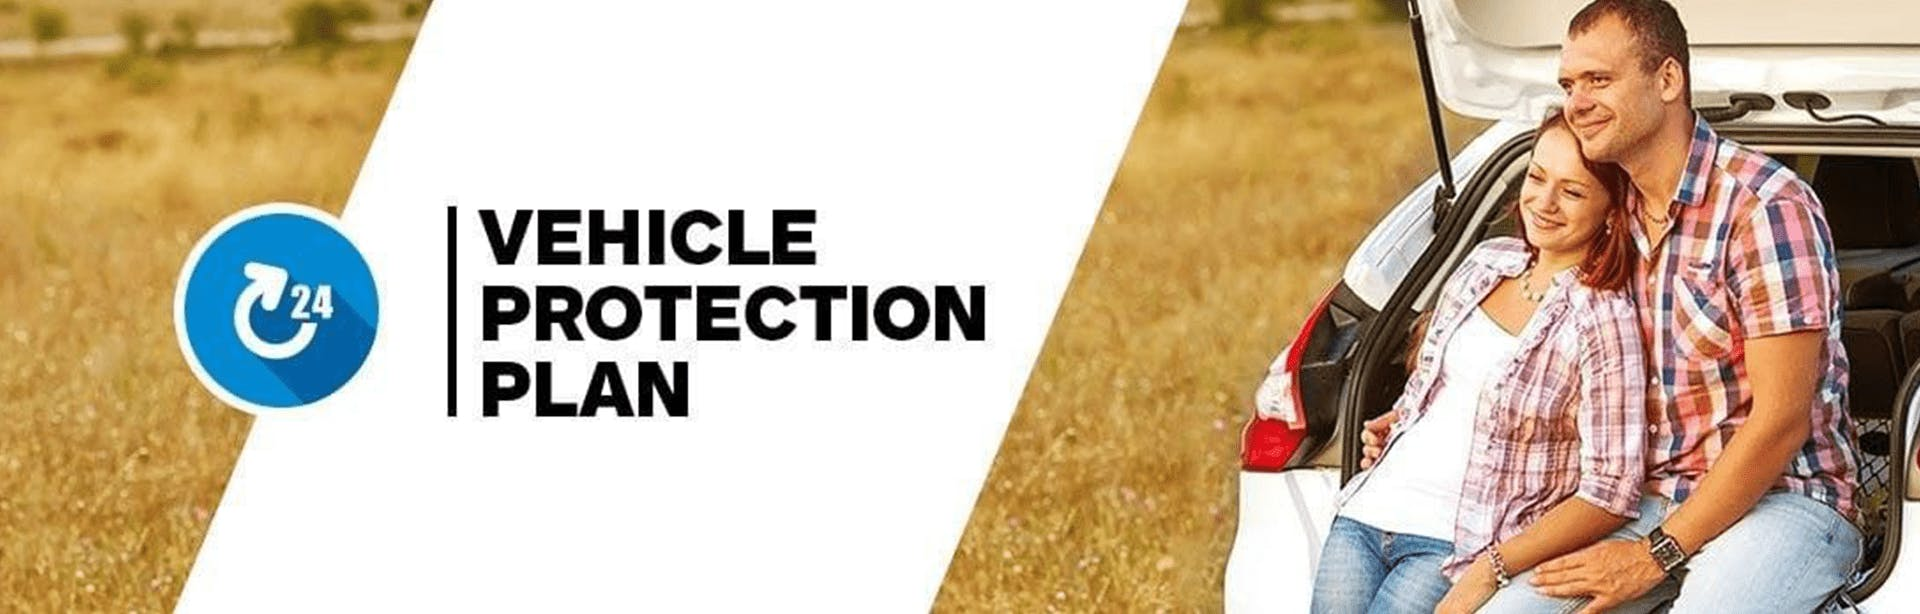 vehicle protection plan - banner - south hills toyota